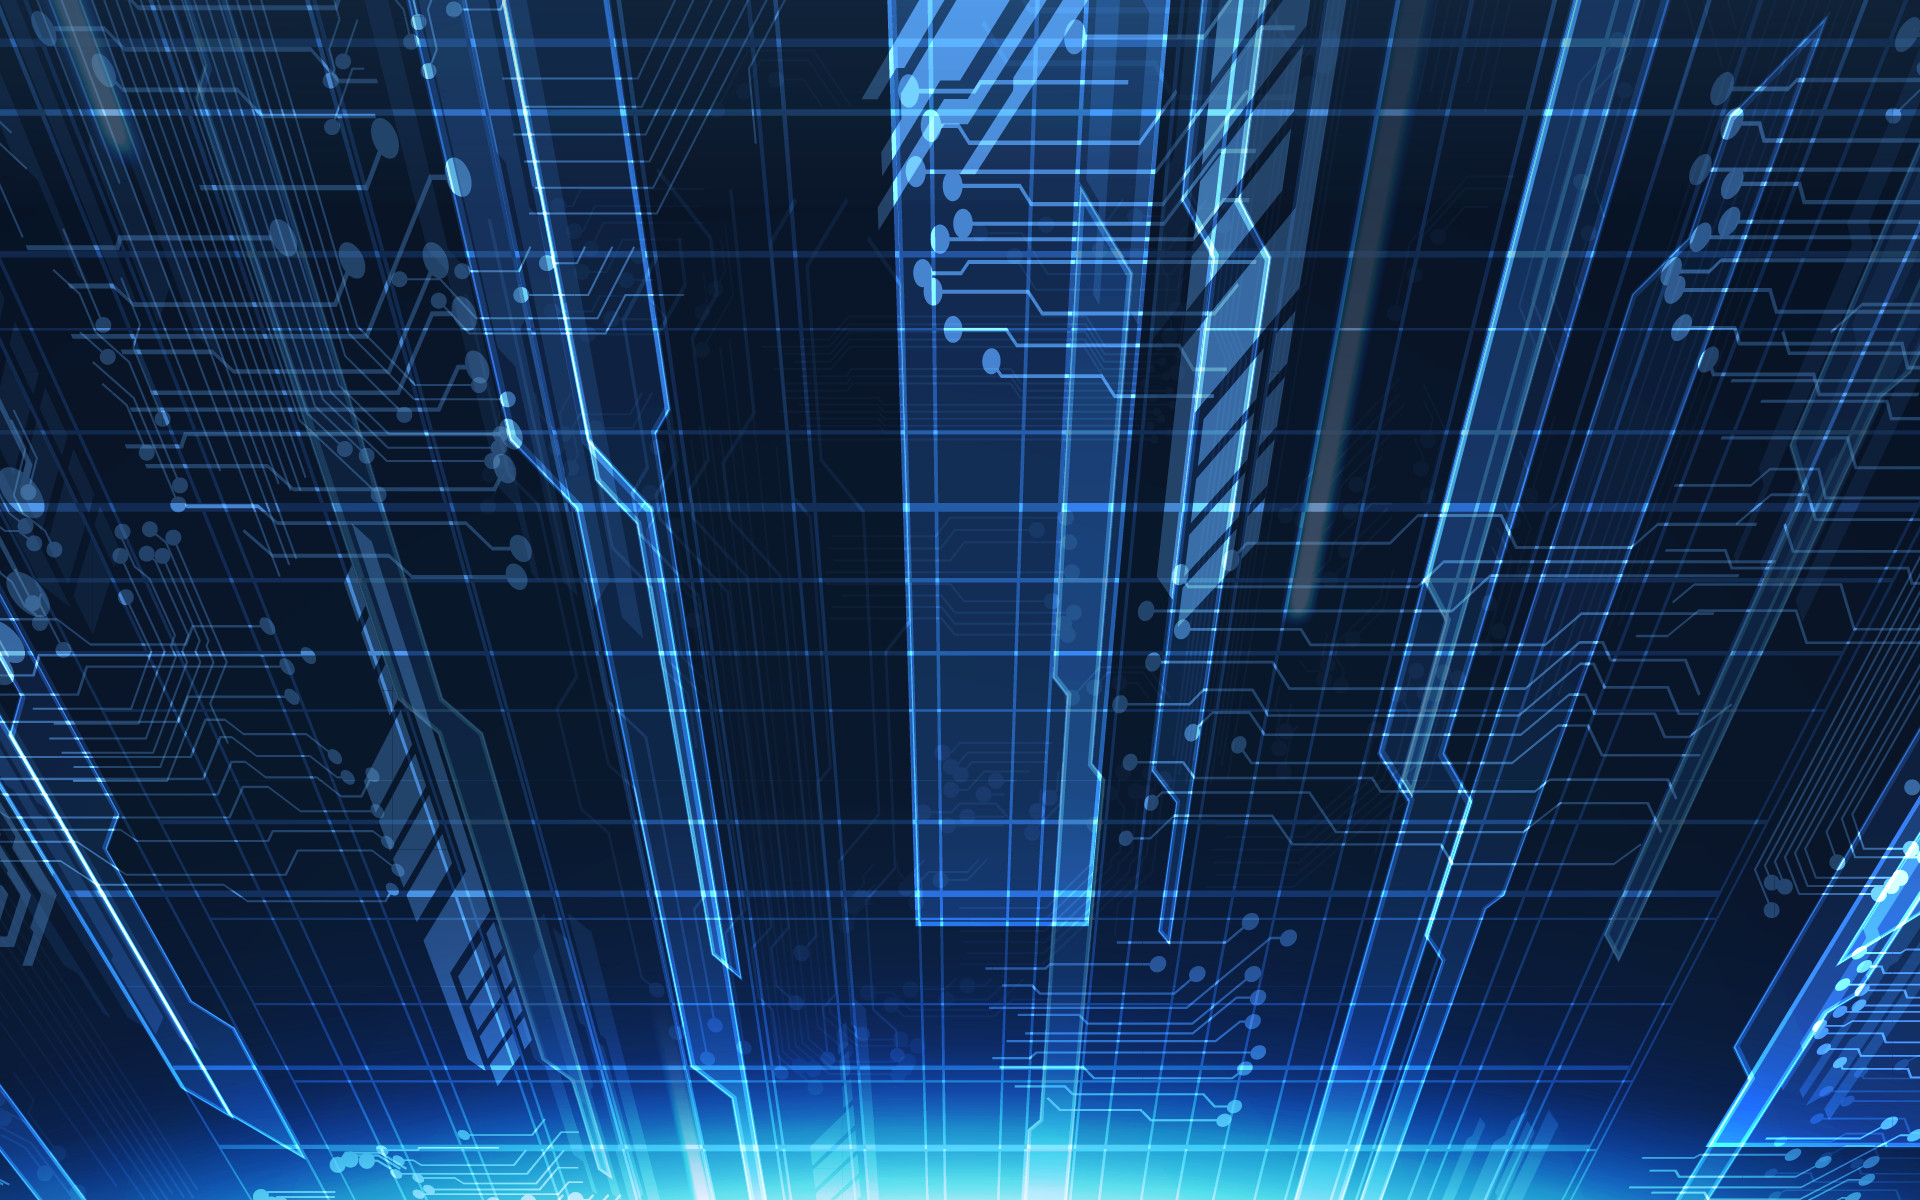 Technology Background Images (41+ images)